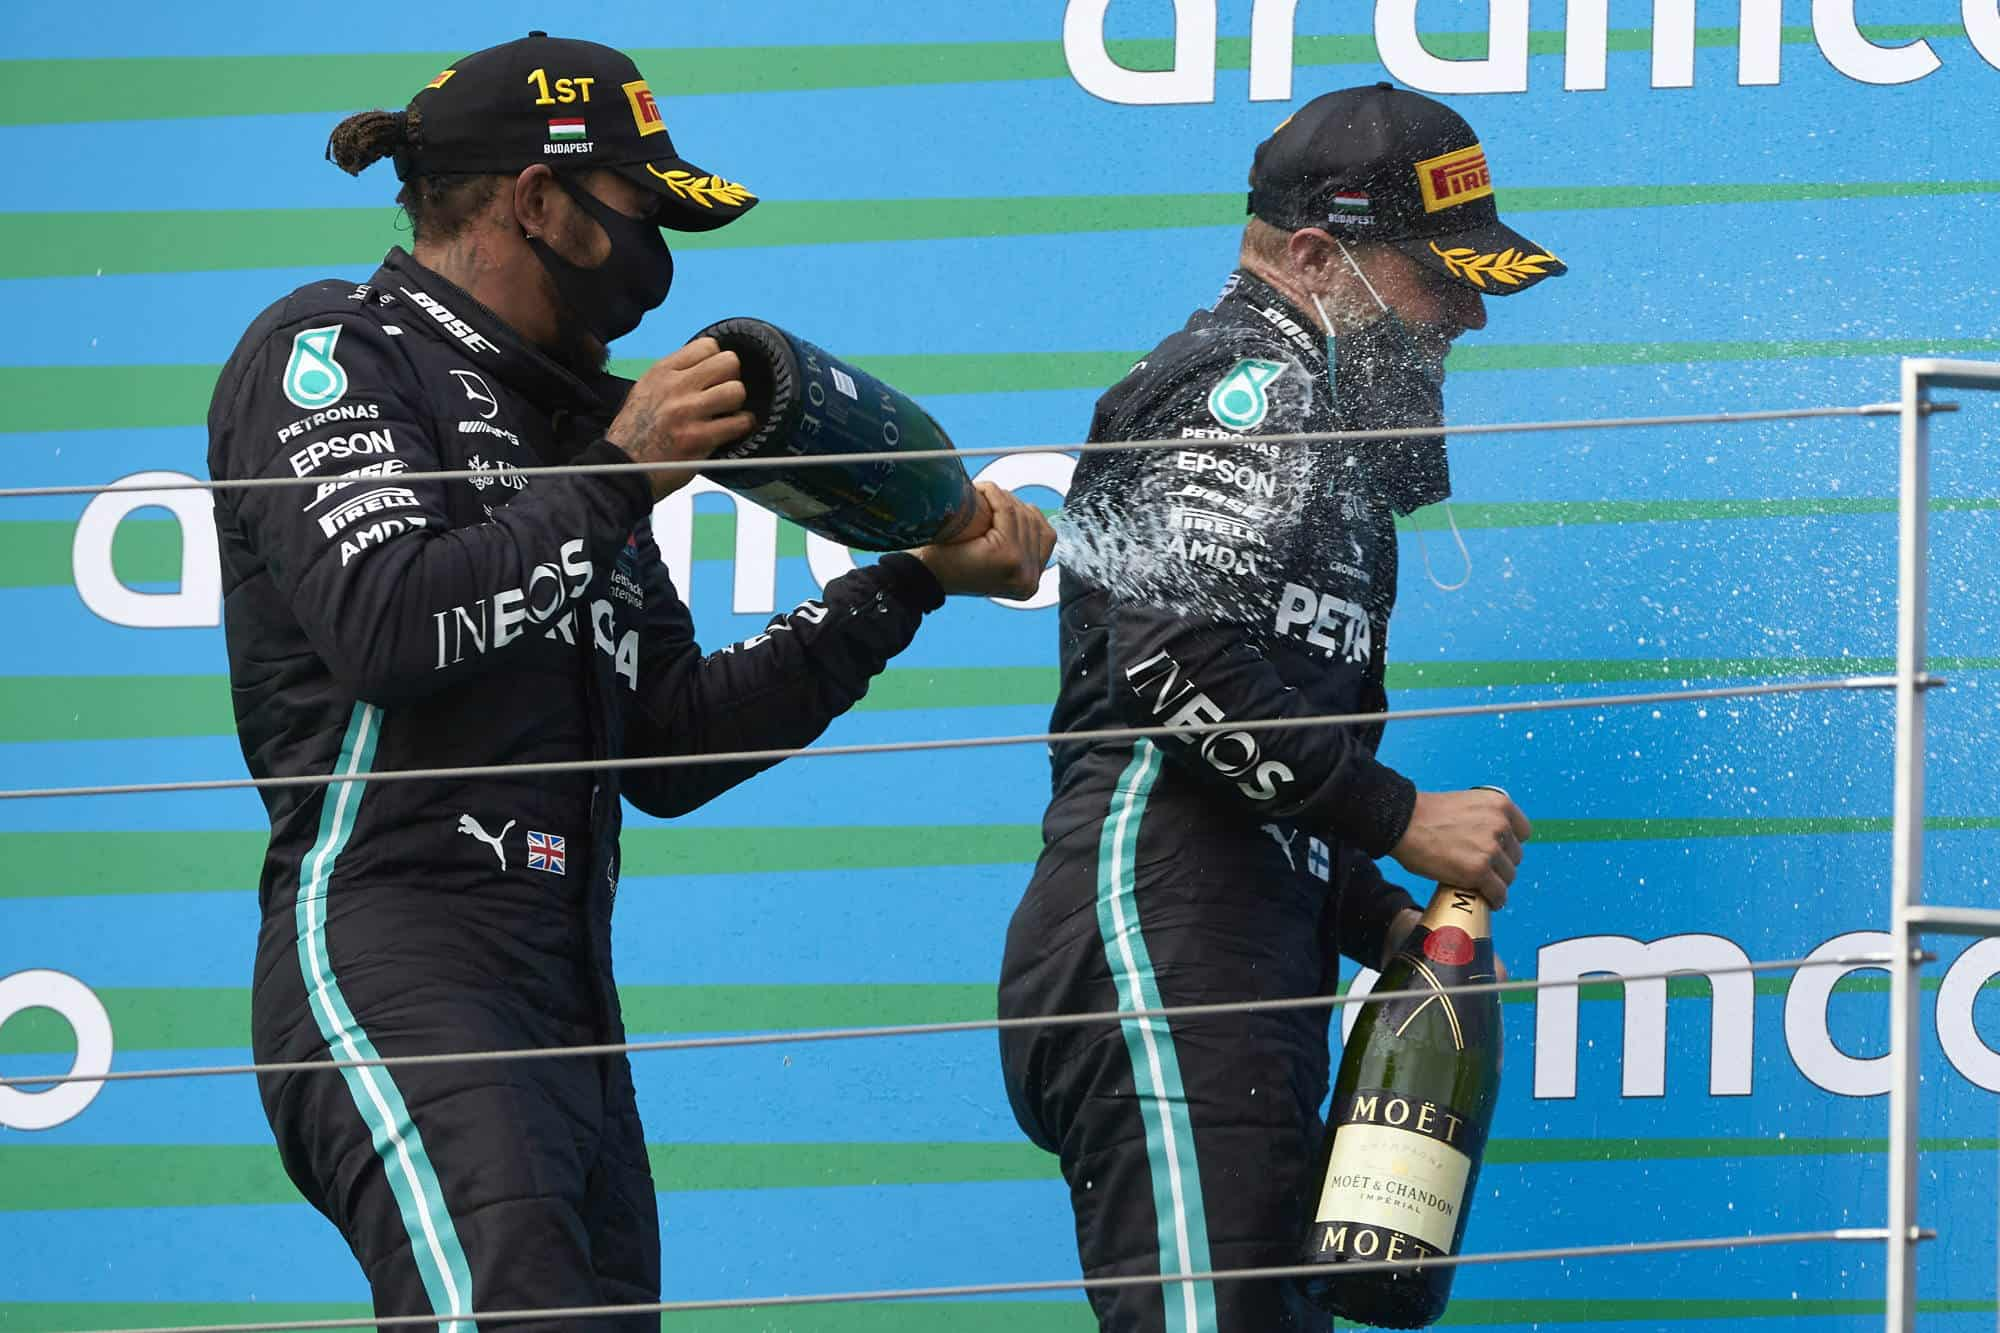 2020 Hungarian GP Mercedes Hamilton Bottas on podium champagne Photo Daimler